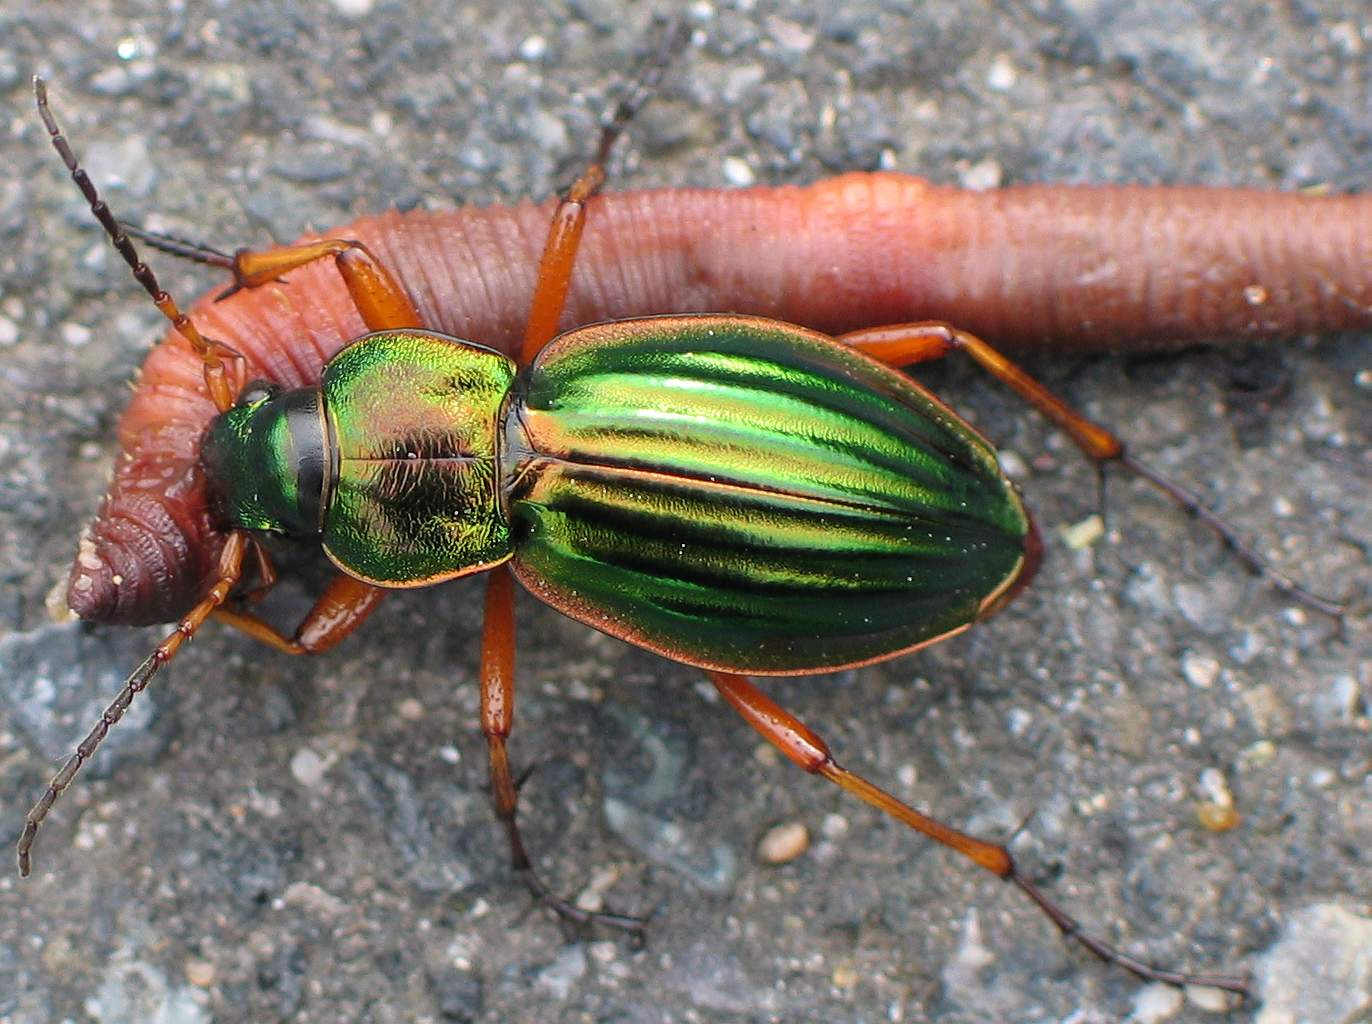 uh43048,1270746694,Carabus auratus with prey